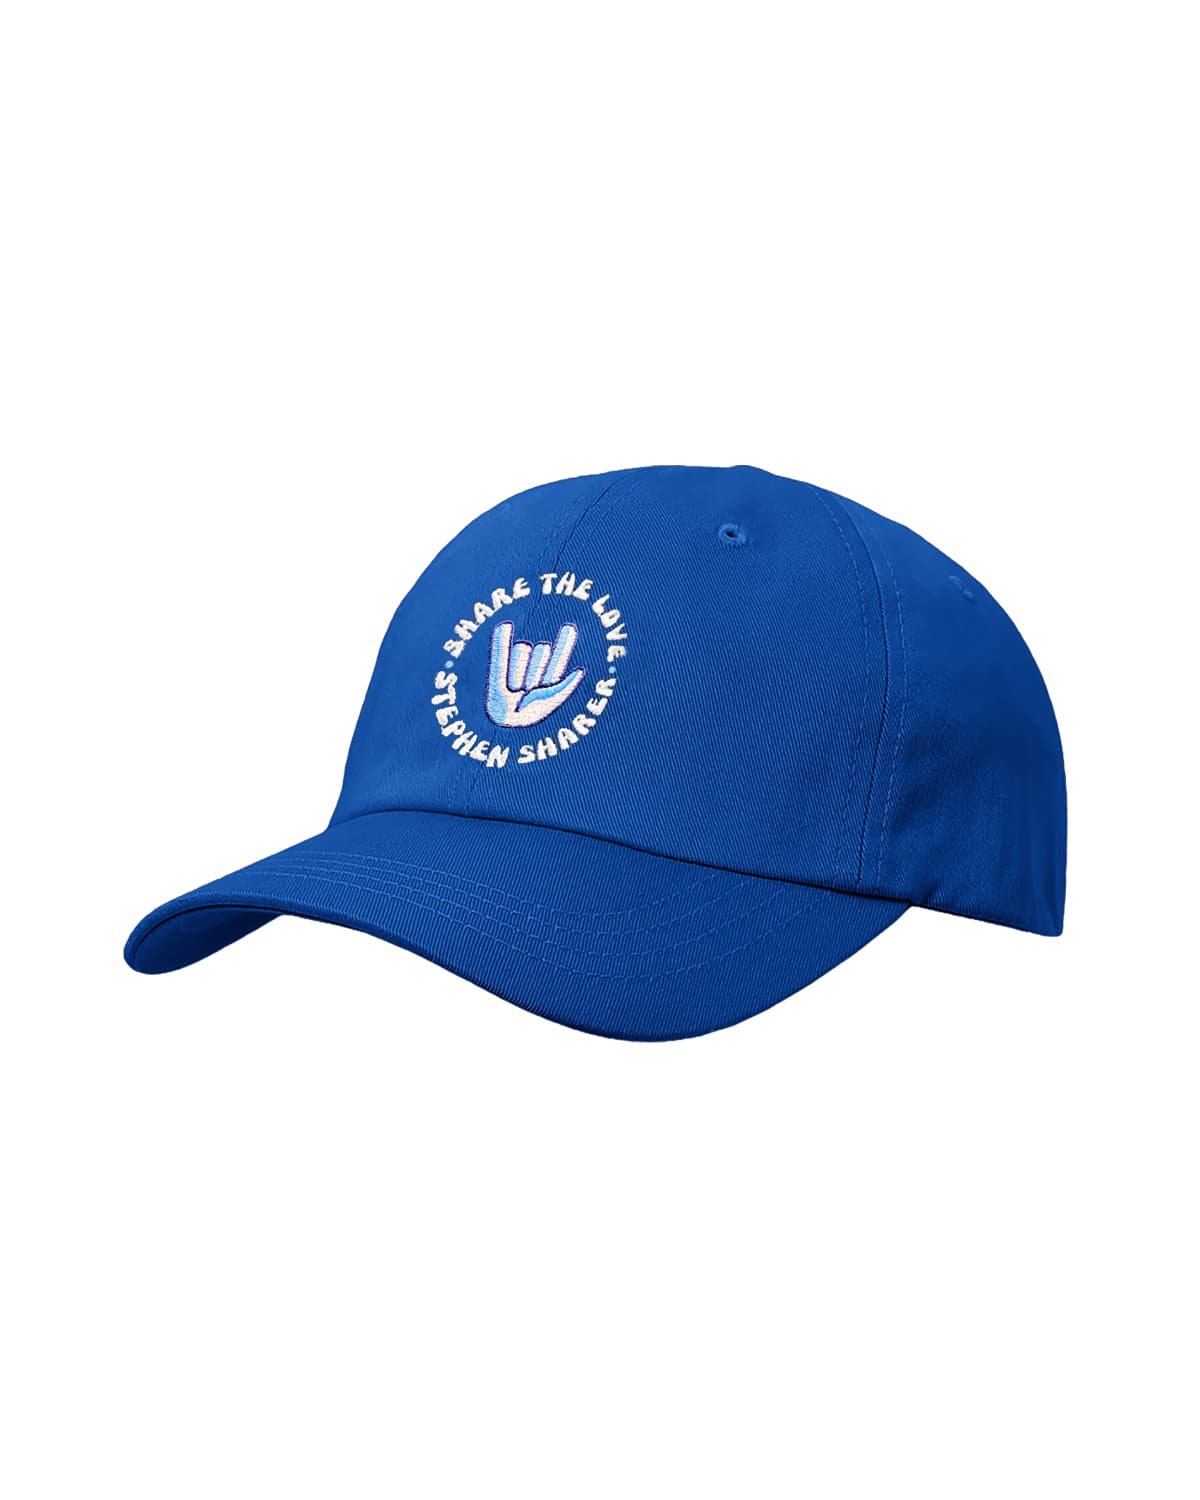 'Fun In The Sun' Baseball Cap